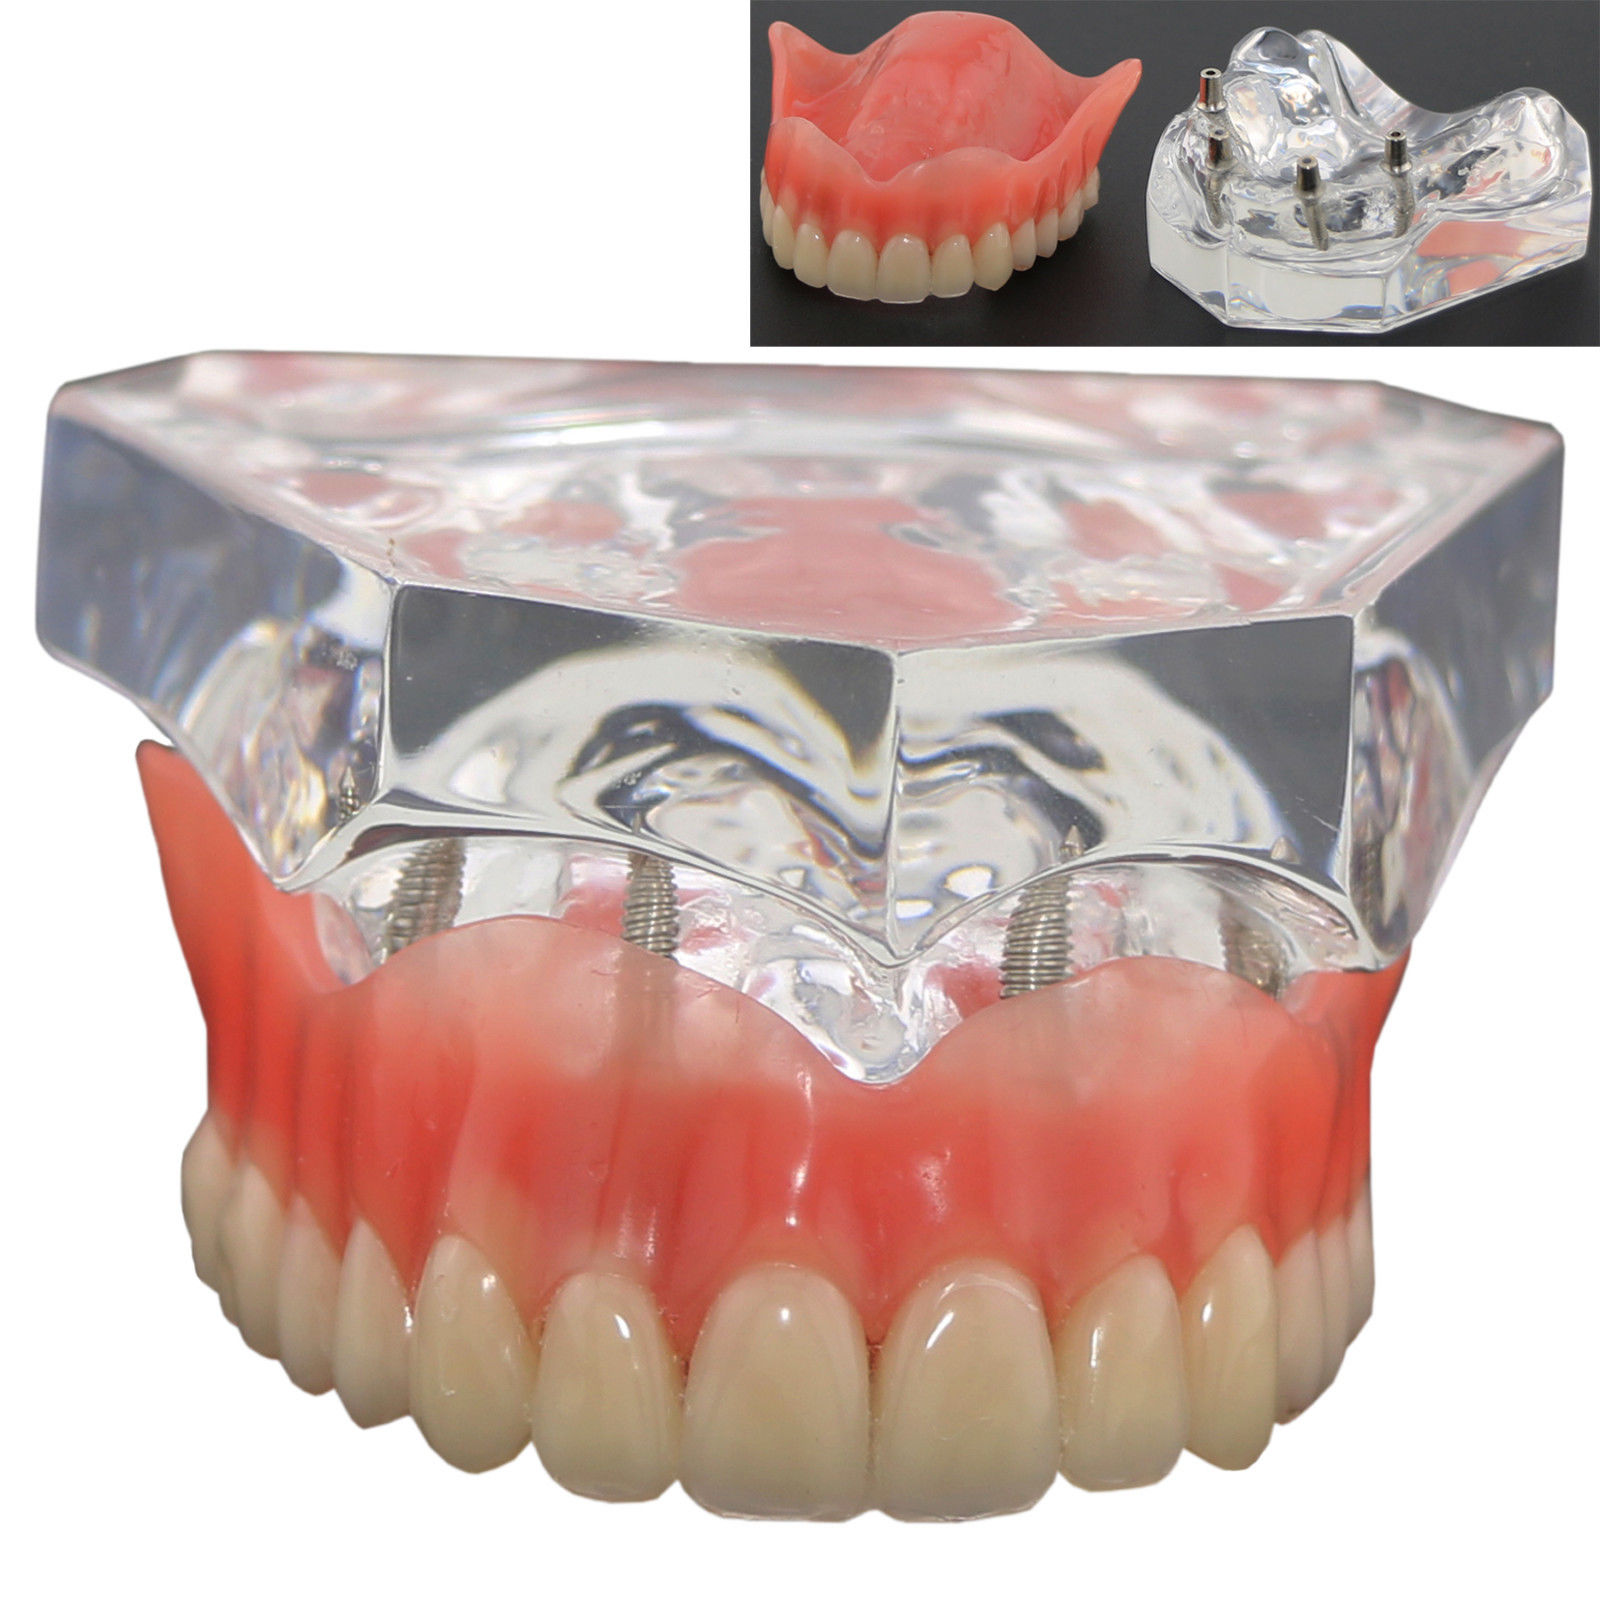 1pcs /pack Dental Upper Overdenture Superior 4 Implants Demo Model 6001 02 Teeth Model